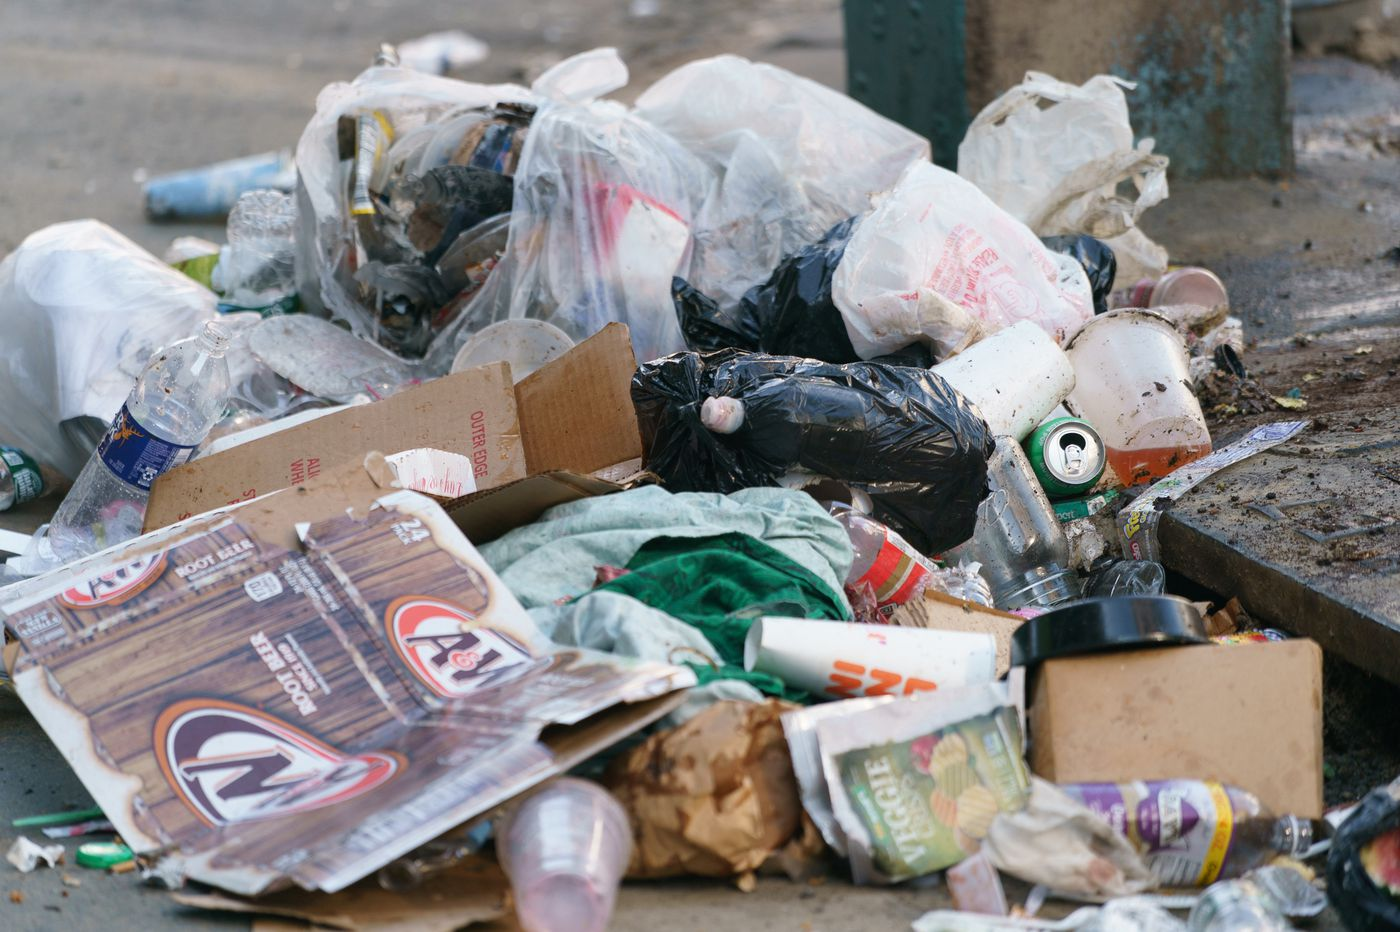 Trash piling up? Here's where you can take it.